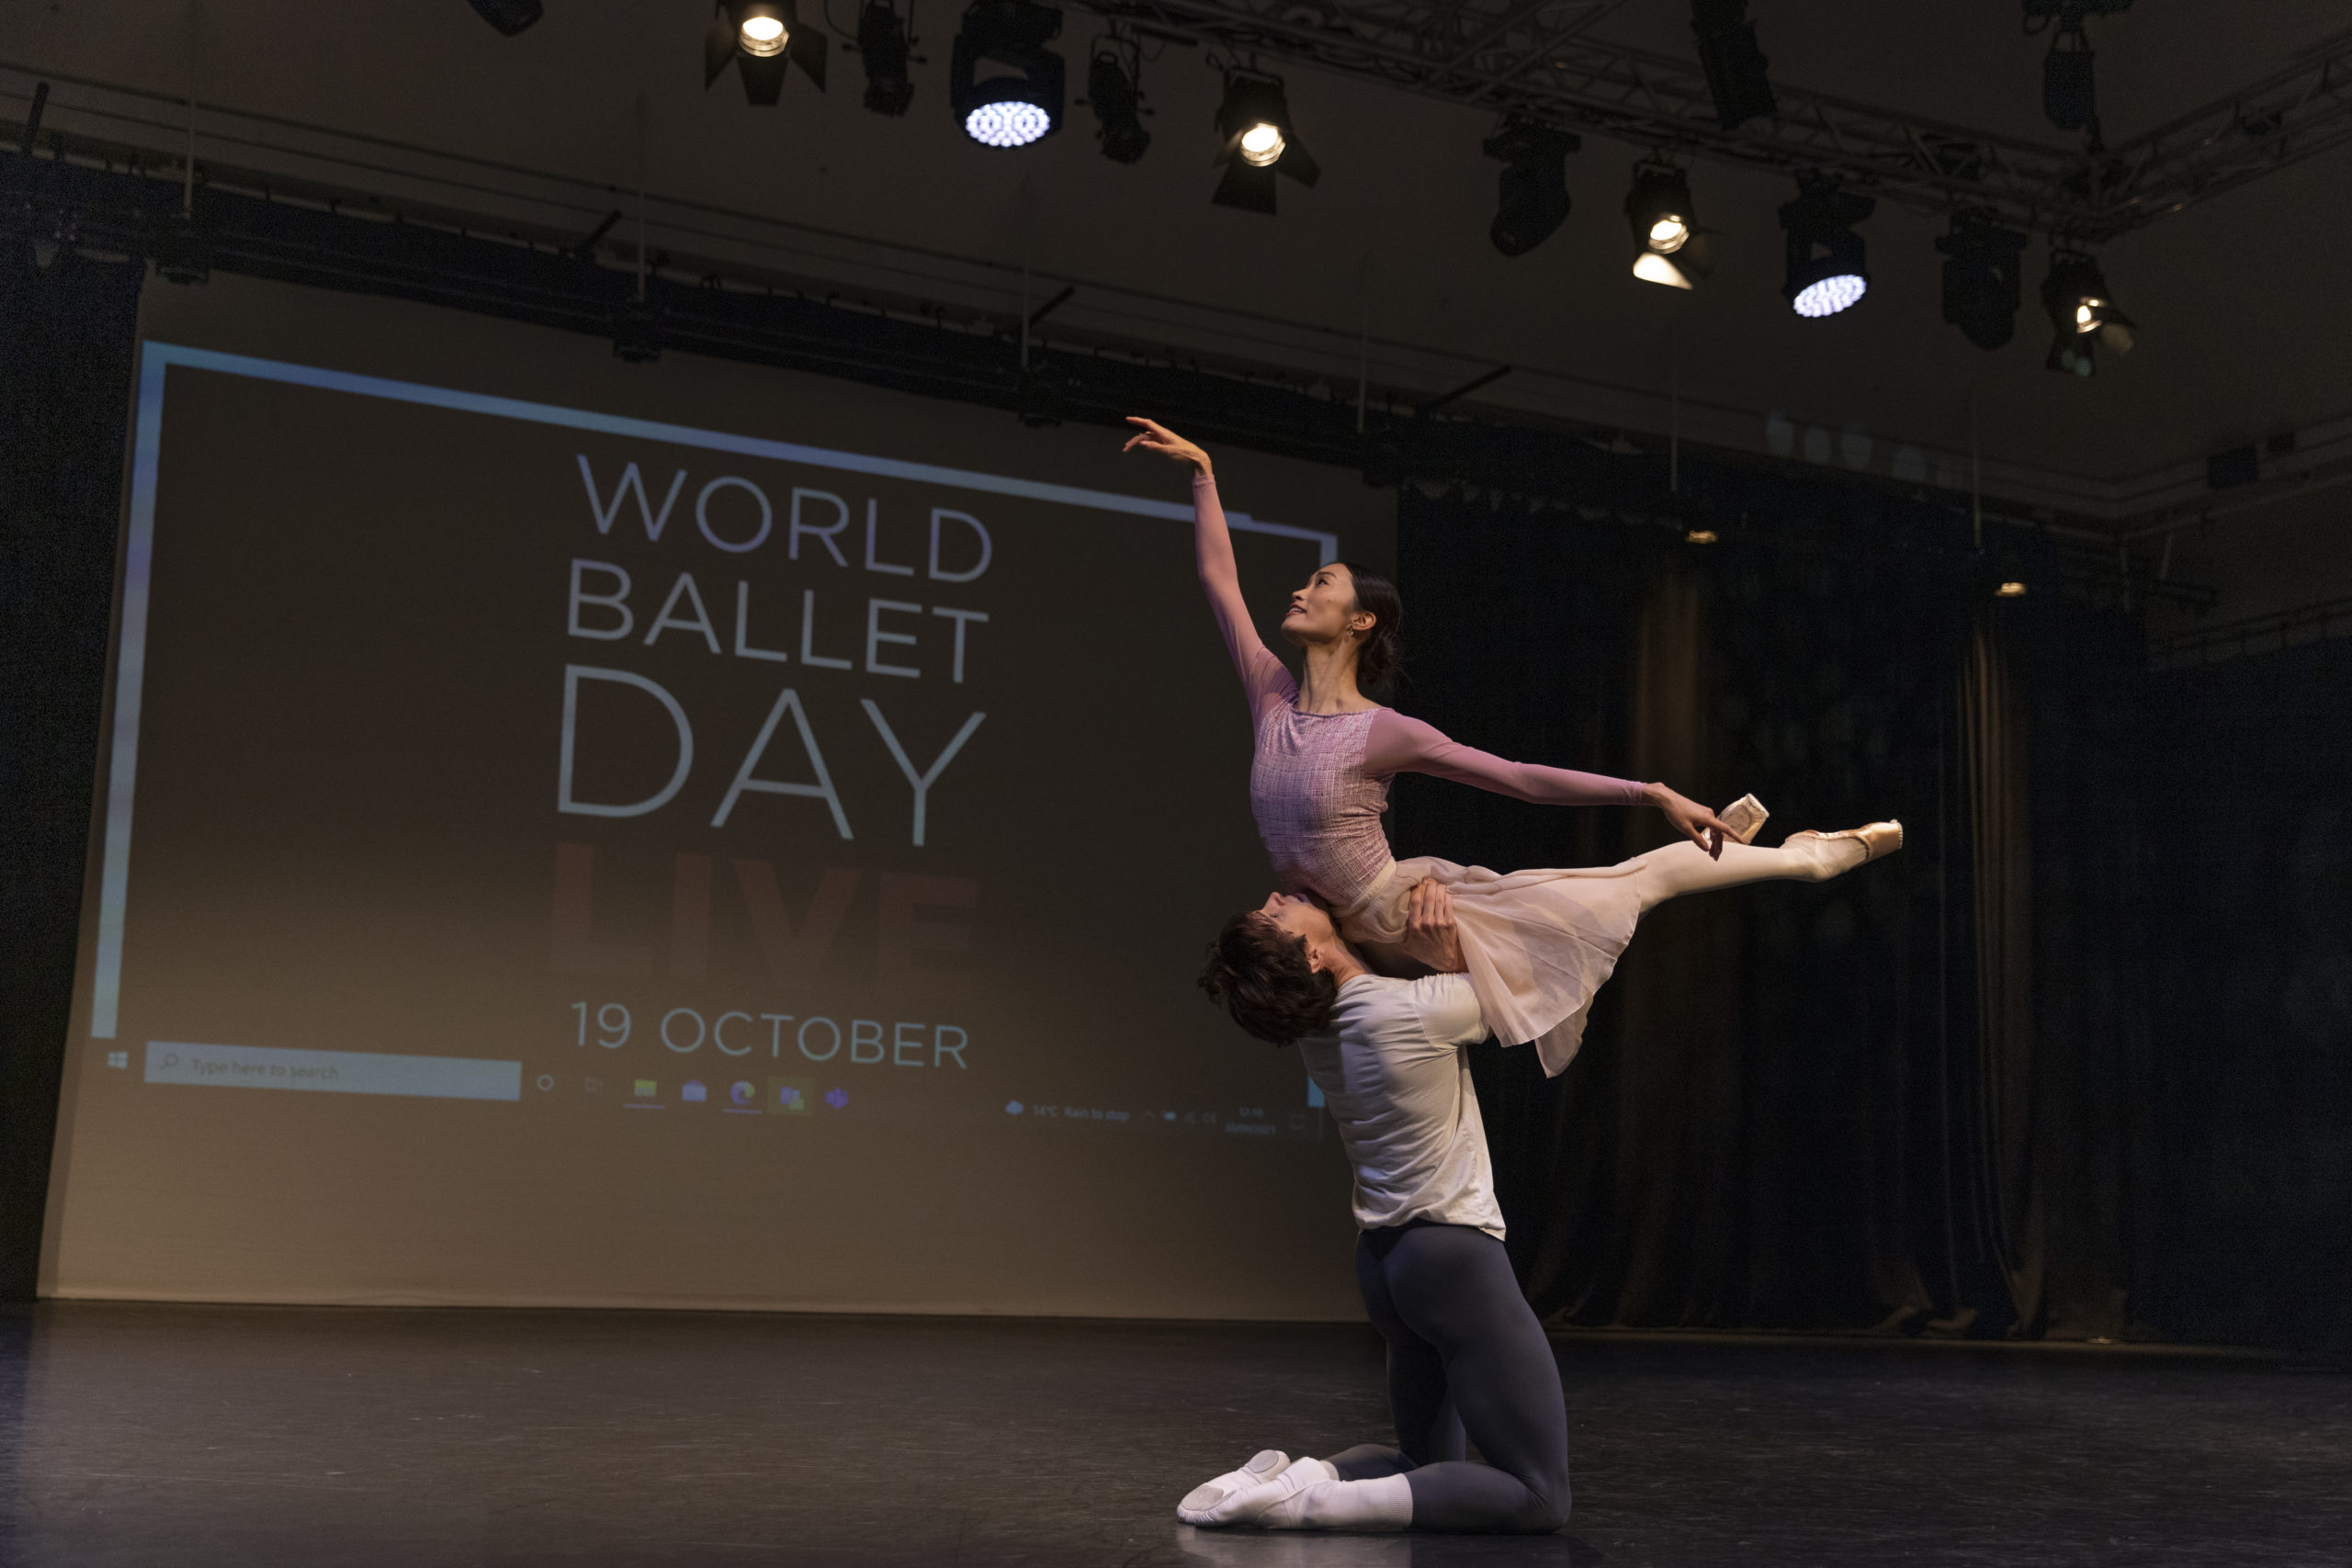 William Bracewell, kneels on the ground and holds Fumi Kaneko overhead by the hips as she arches her upper body up and lifts both her legs behind her. Both wear dance clothing and dance onstage in front of a backdrop that says World Ballet Day LIVE 19 October.